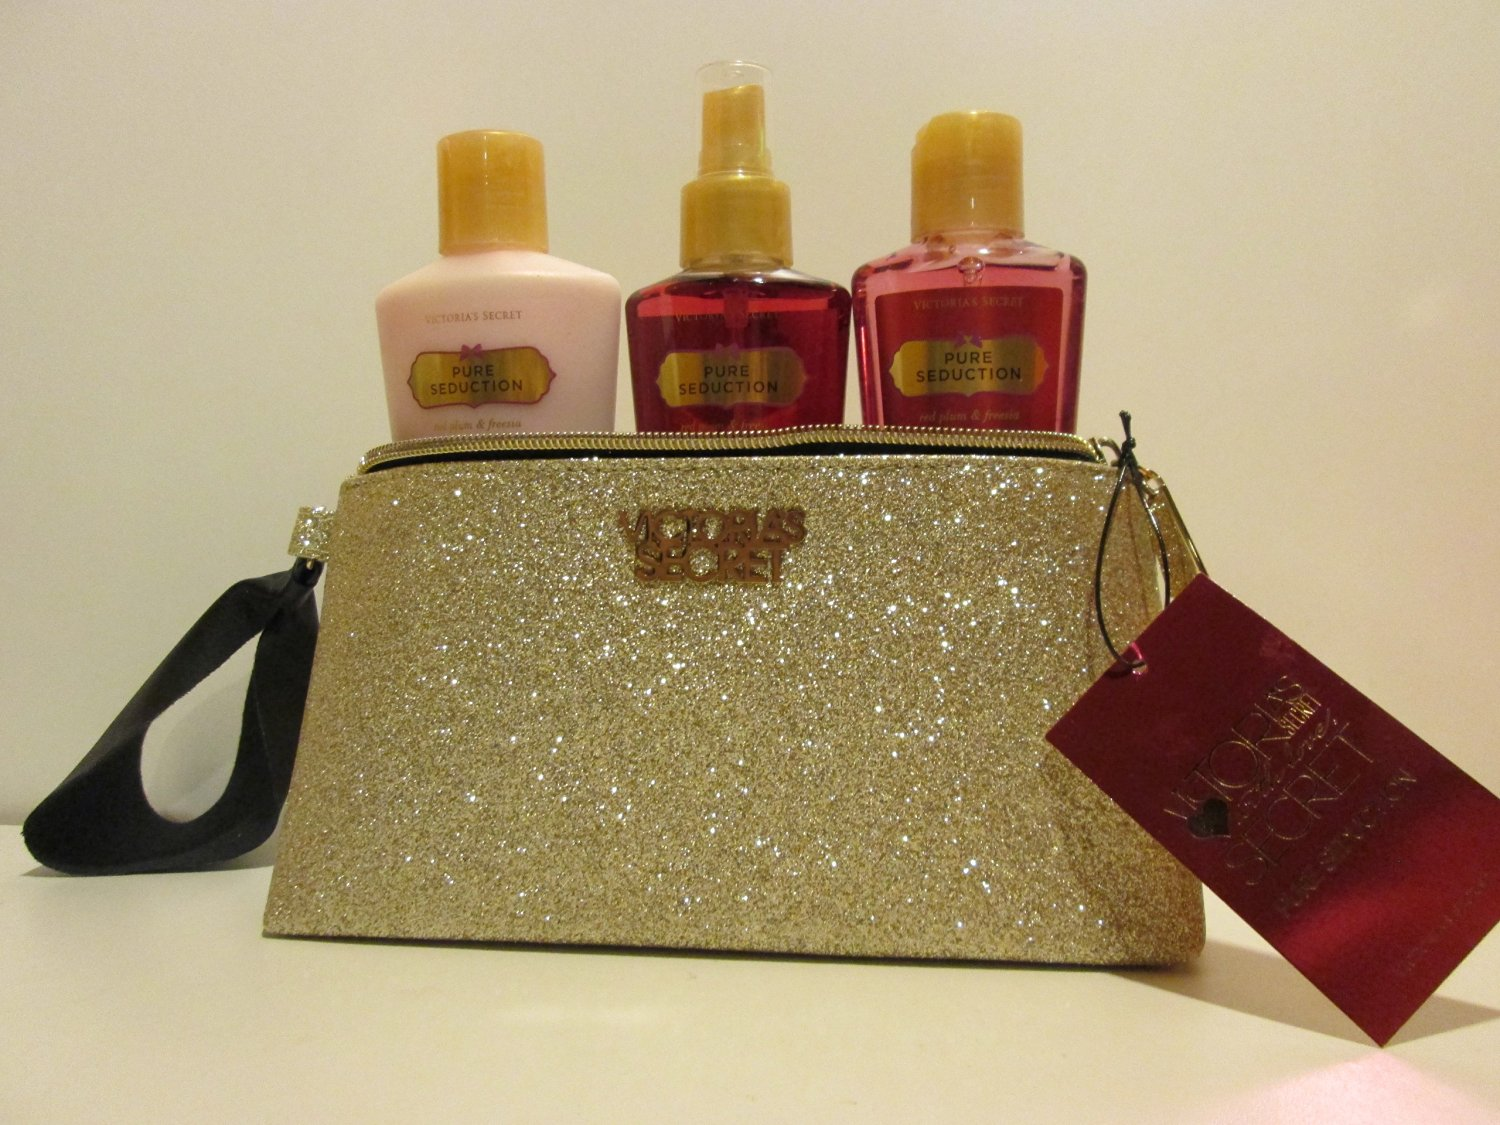 Victoria's Secret Pure Seduction Gift Set Light Gold Shimmery Bag with Pure Seduction Lotion, Mist, and Wash